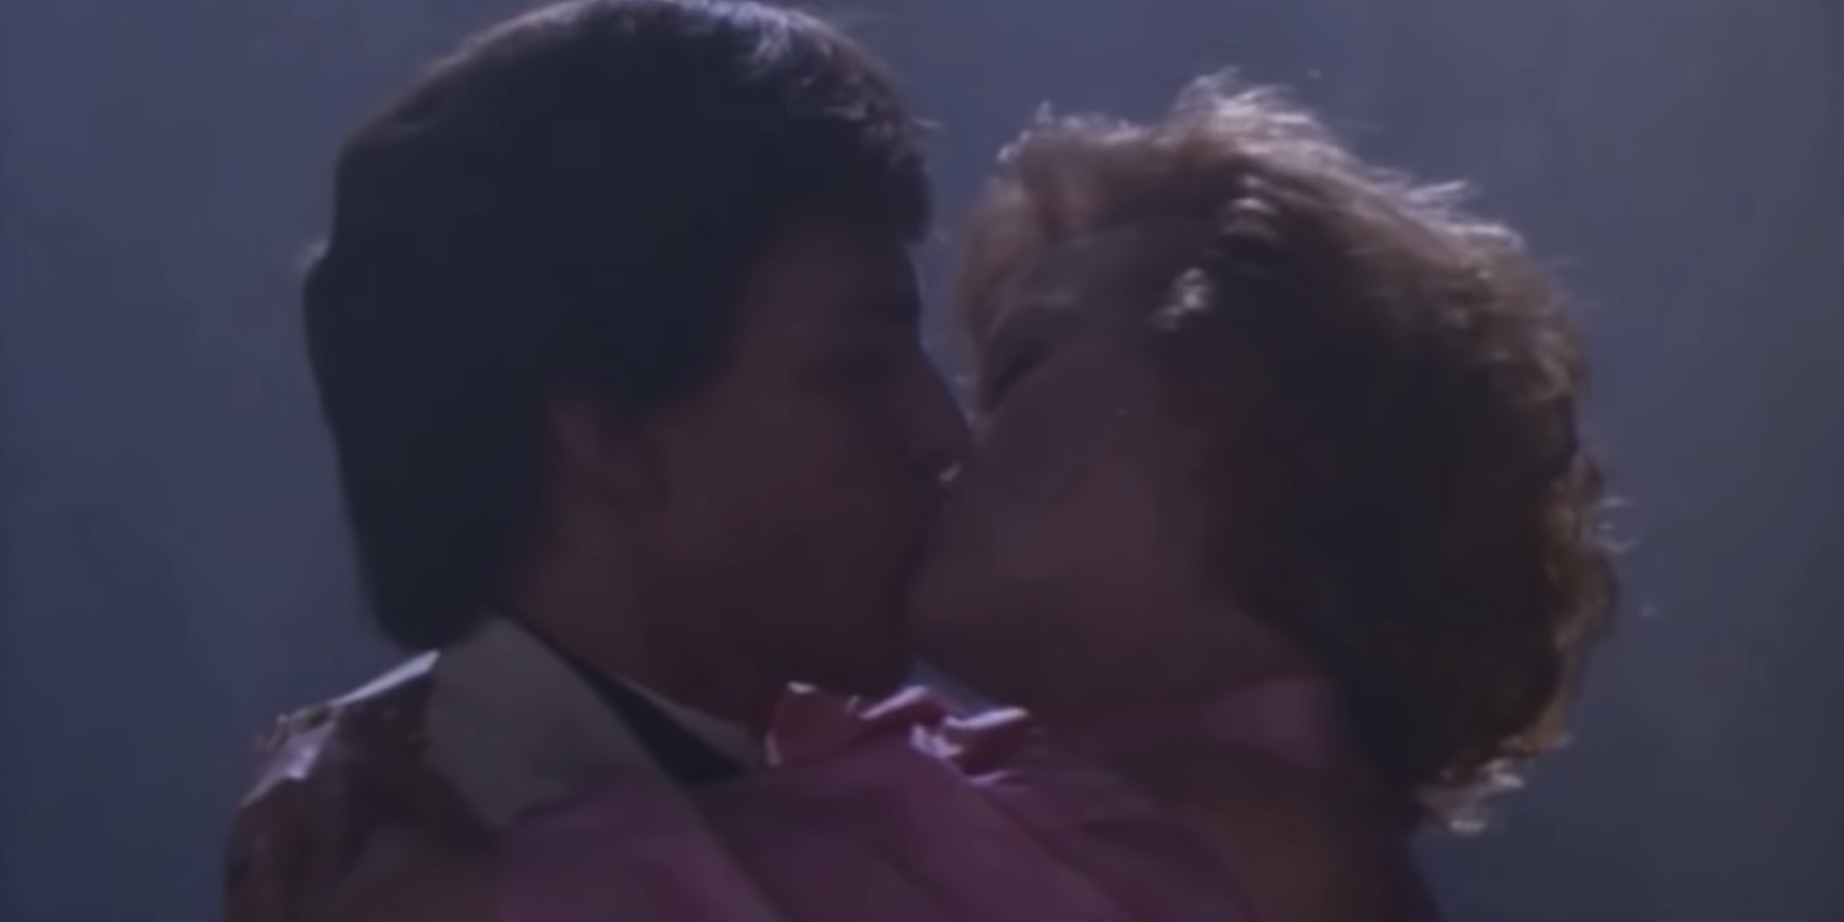 Pretty in Pink, 80s movie end scene, movies